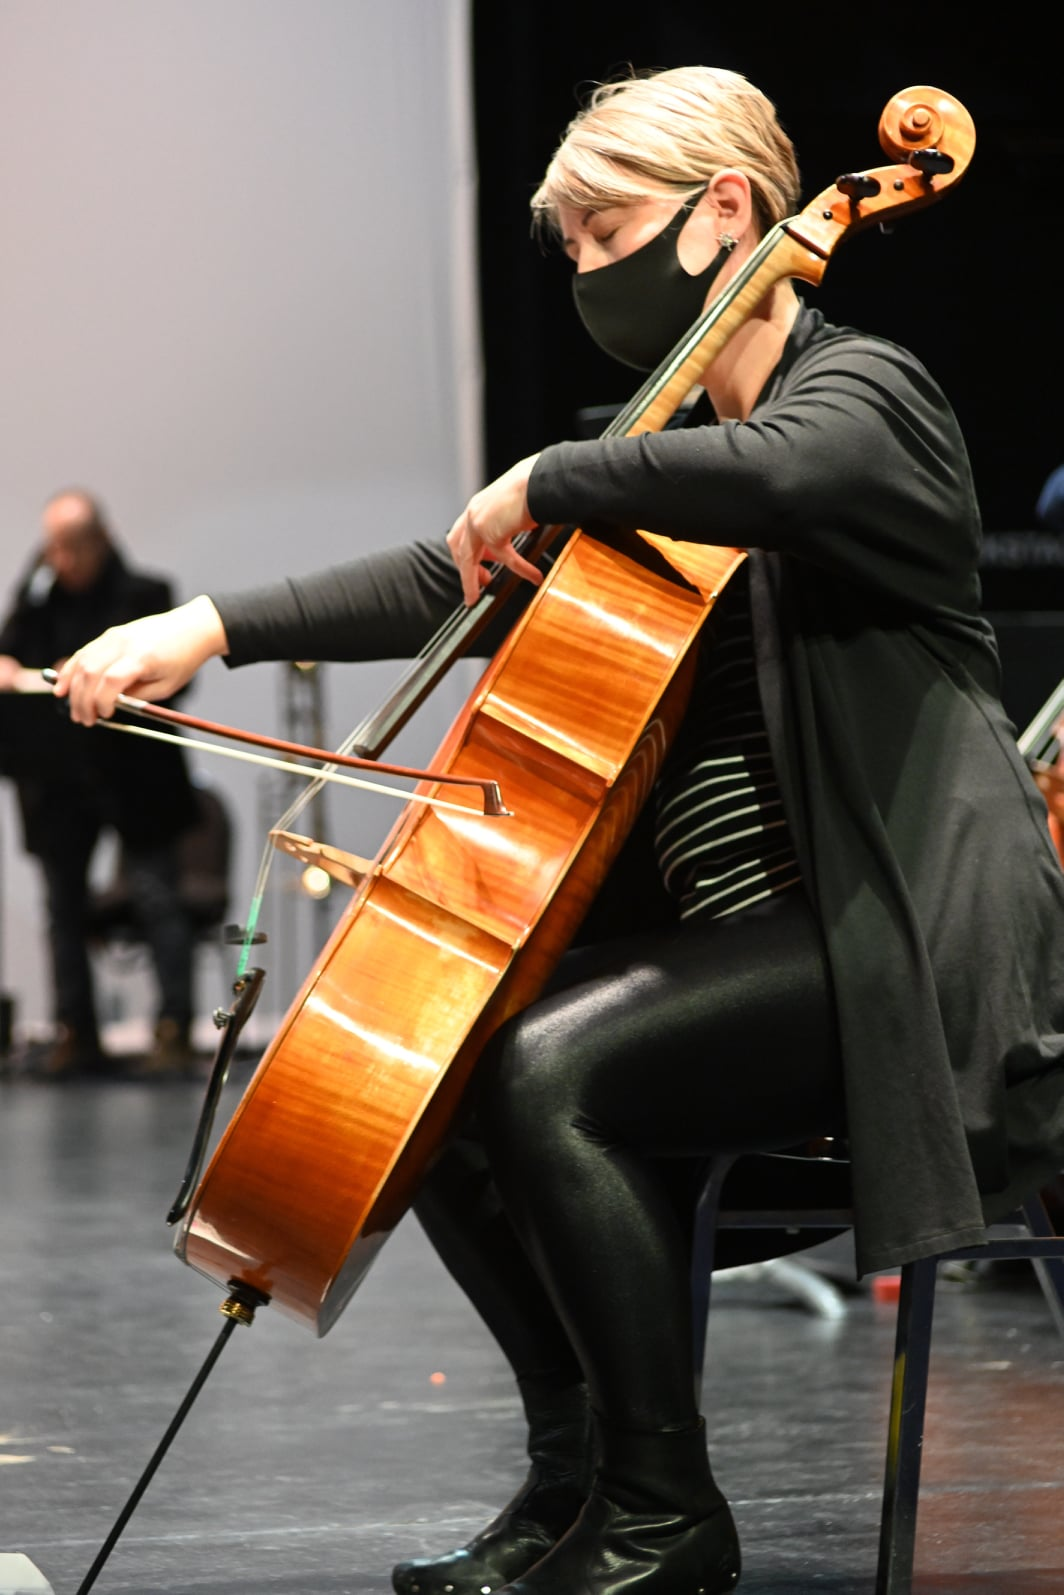 Olivia Walsh, wearing black and wearing a mask, playing the cello with her eyes closed